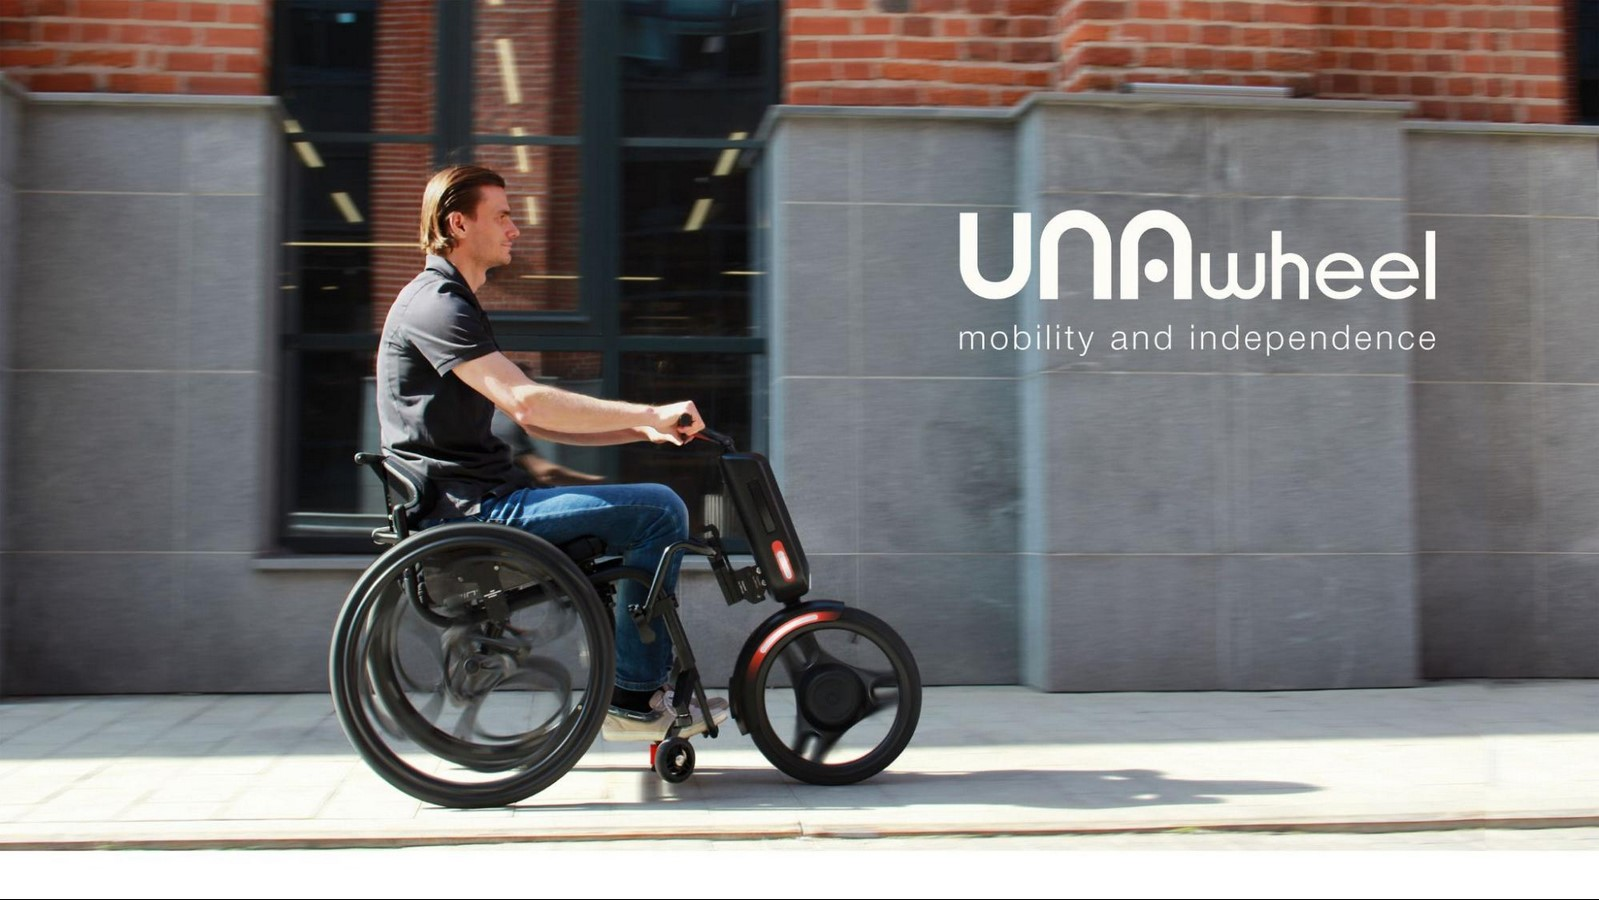 SupremeMotors Turn a wheelchair into an electric vehicle known as UNAwheel maxi - Sheet2